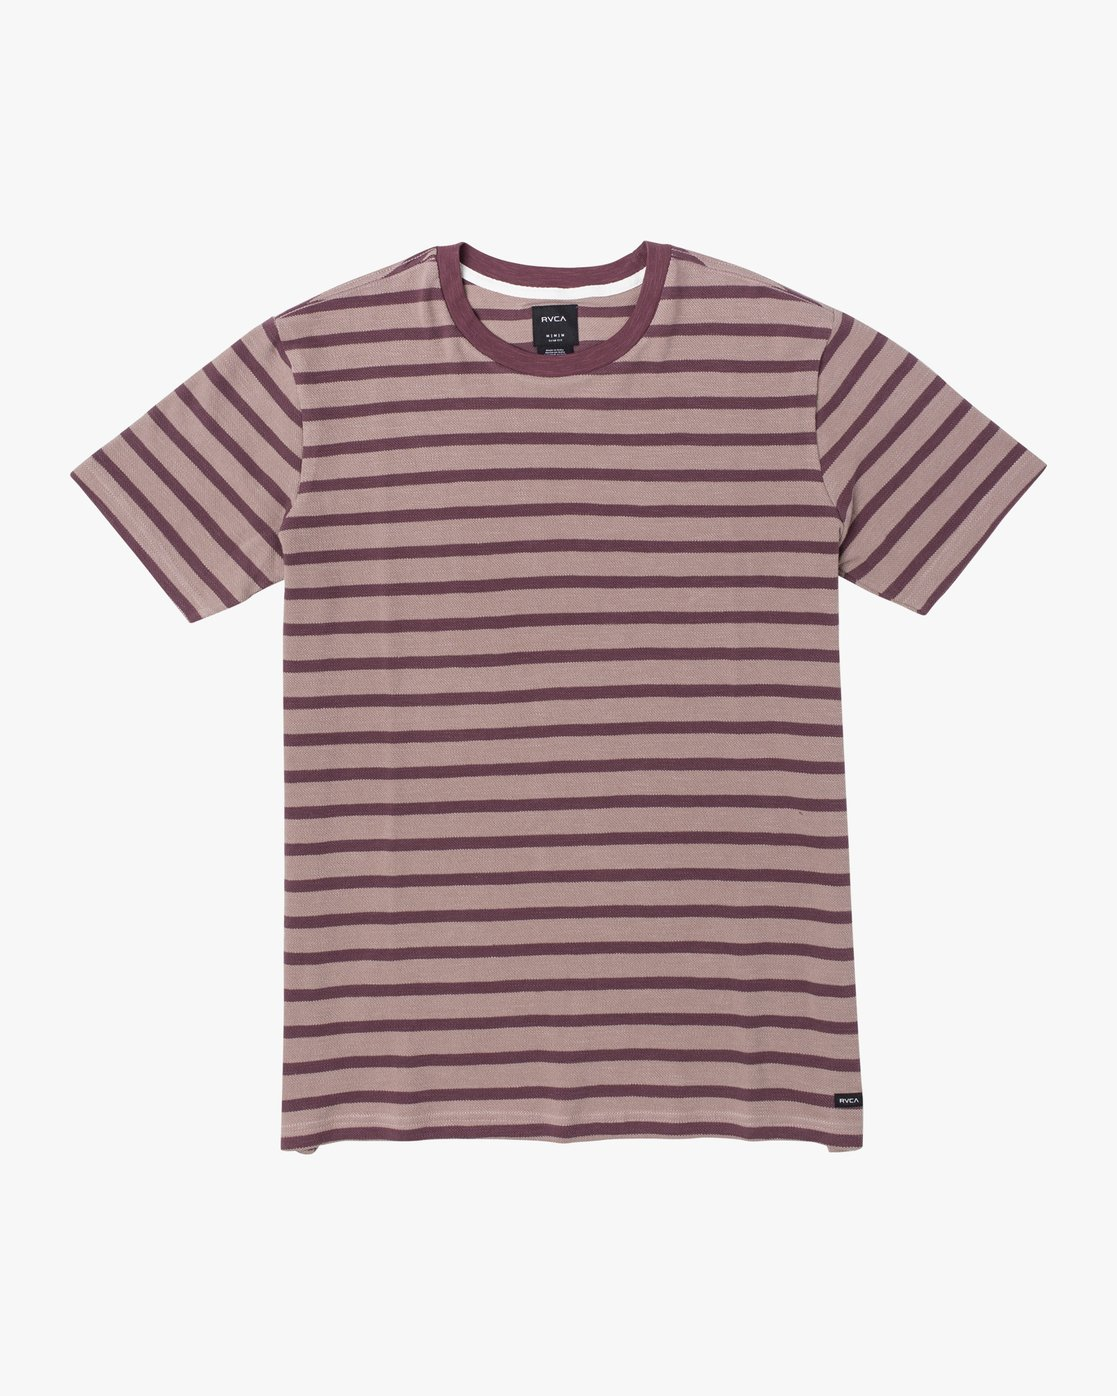 0 GREENWICH STRIPE SHORT SLEEVE KNIT TEE Red M9033RGS RVCA